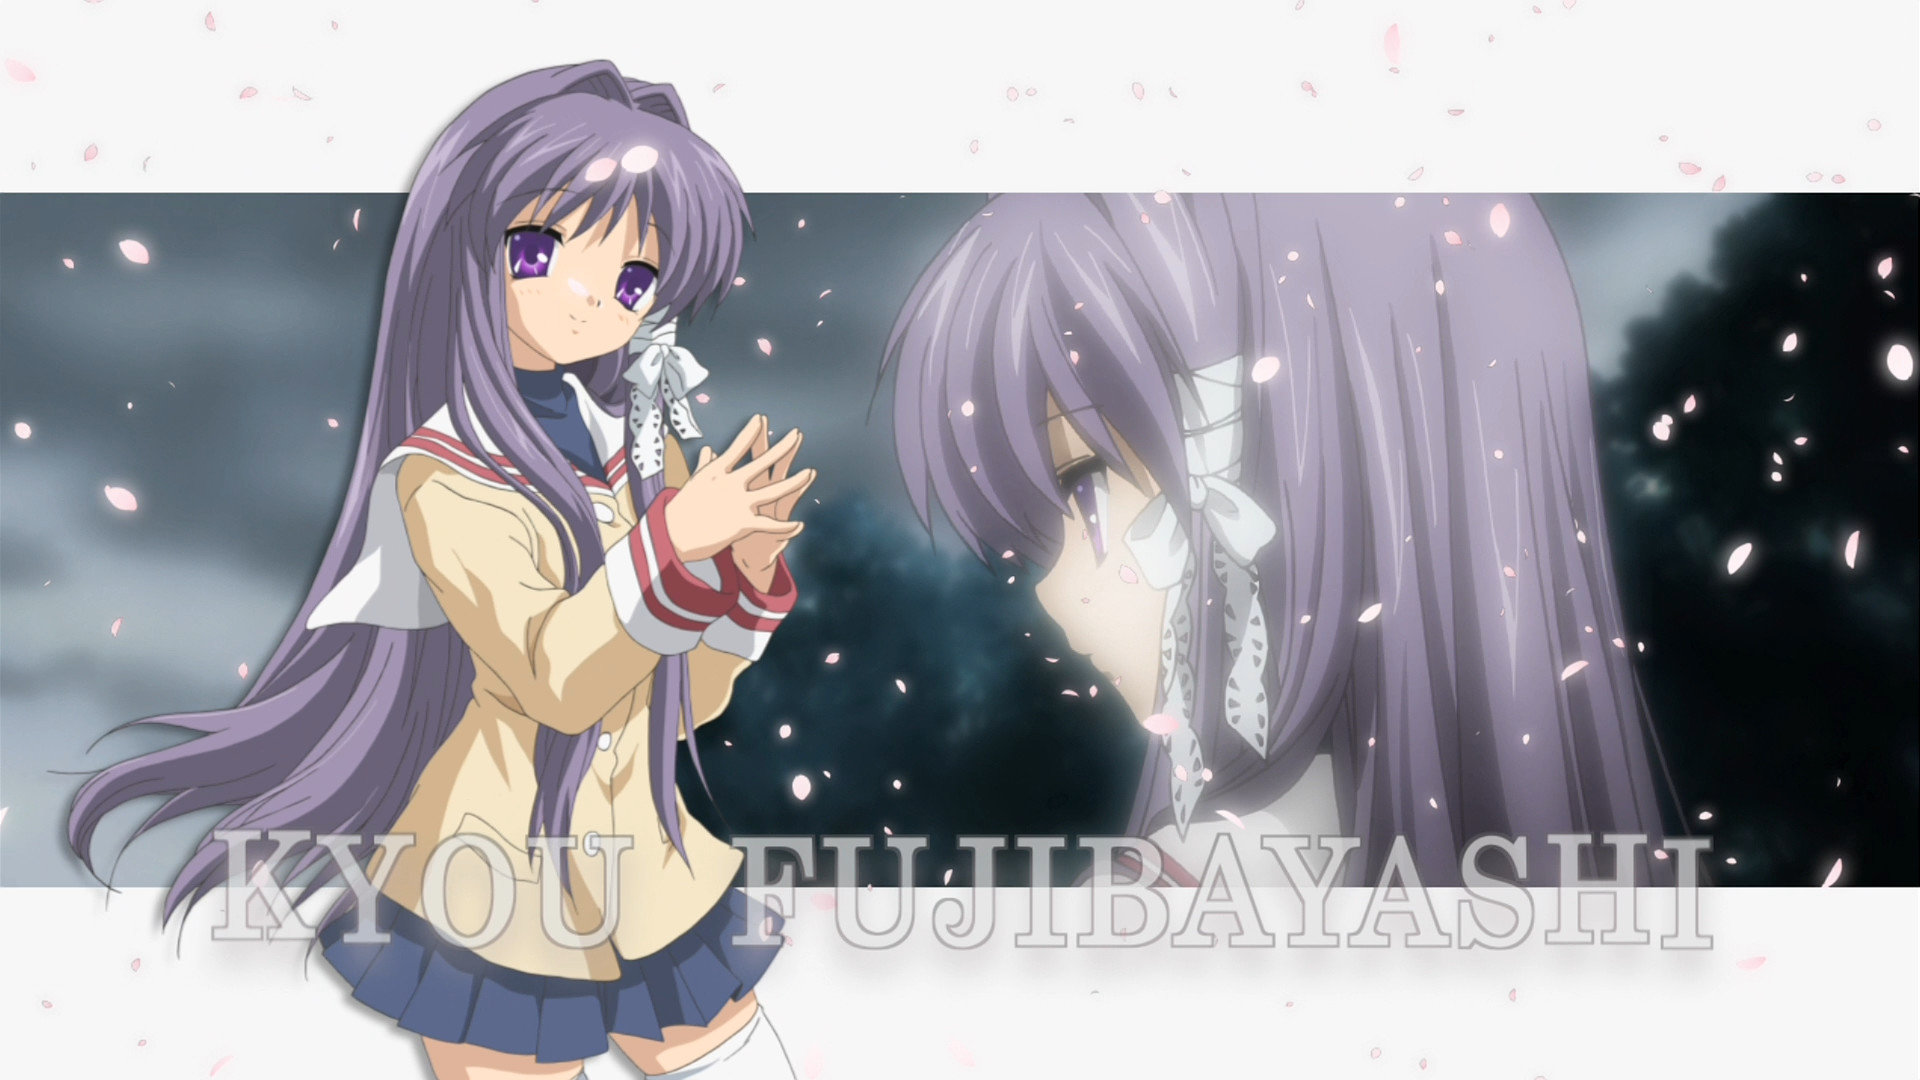 Awesome Kyou Fujibayashi free wallpaper ID:316379 for full hd 1920x1080 PC